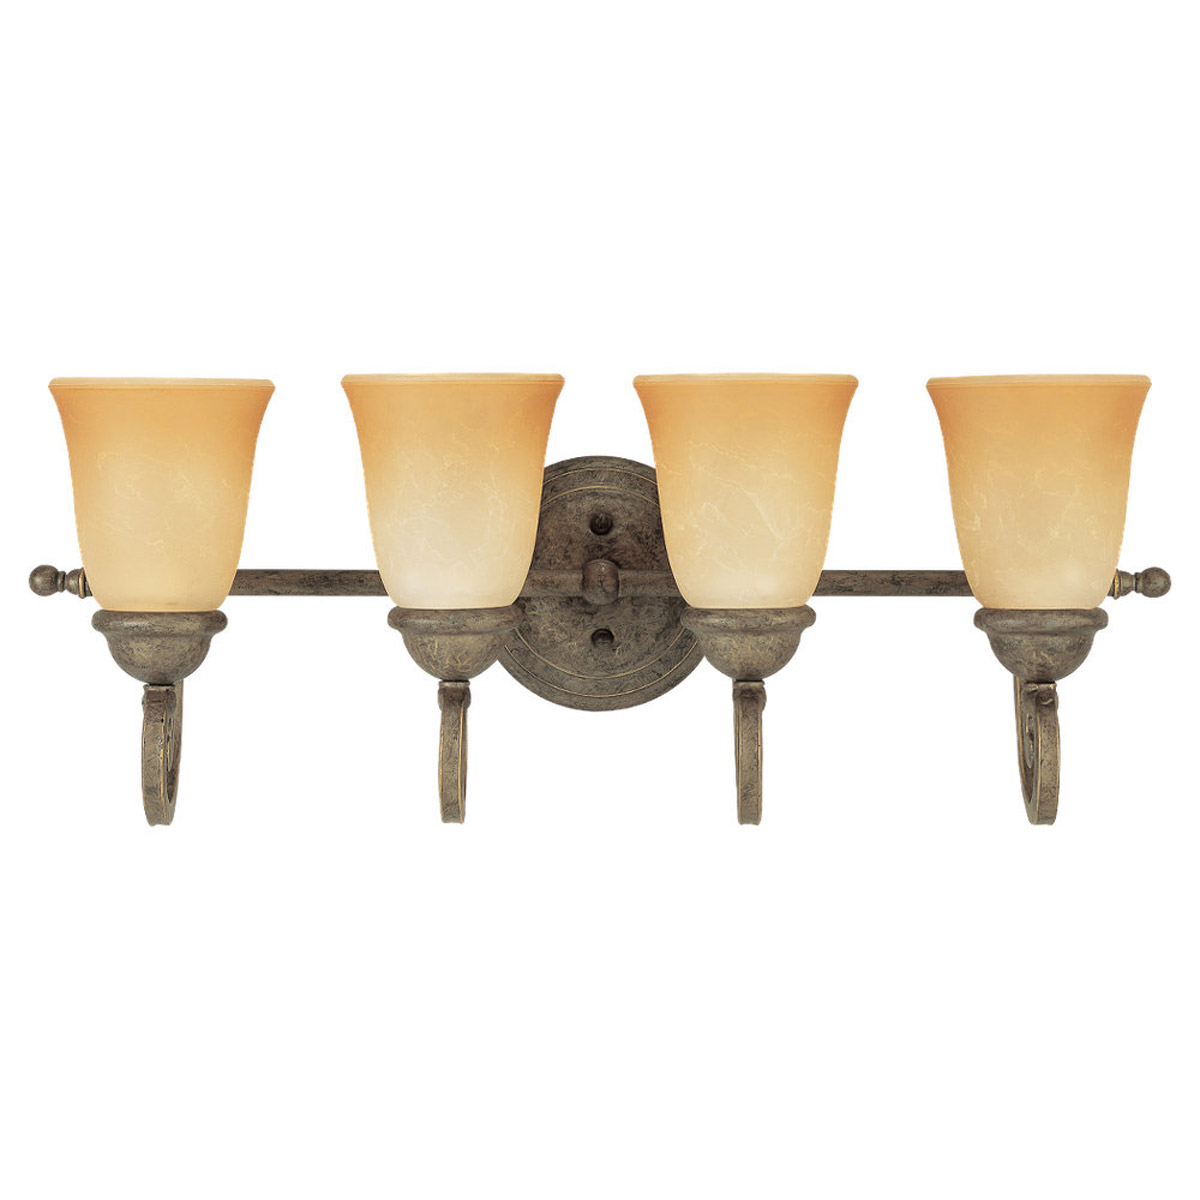 Sea Gull Lighting Brandywine 4 Light Bath Vanity in Antique Bronze 44432-71 photo